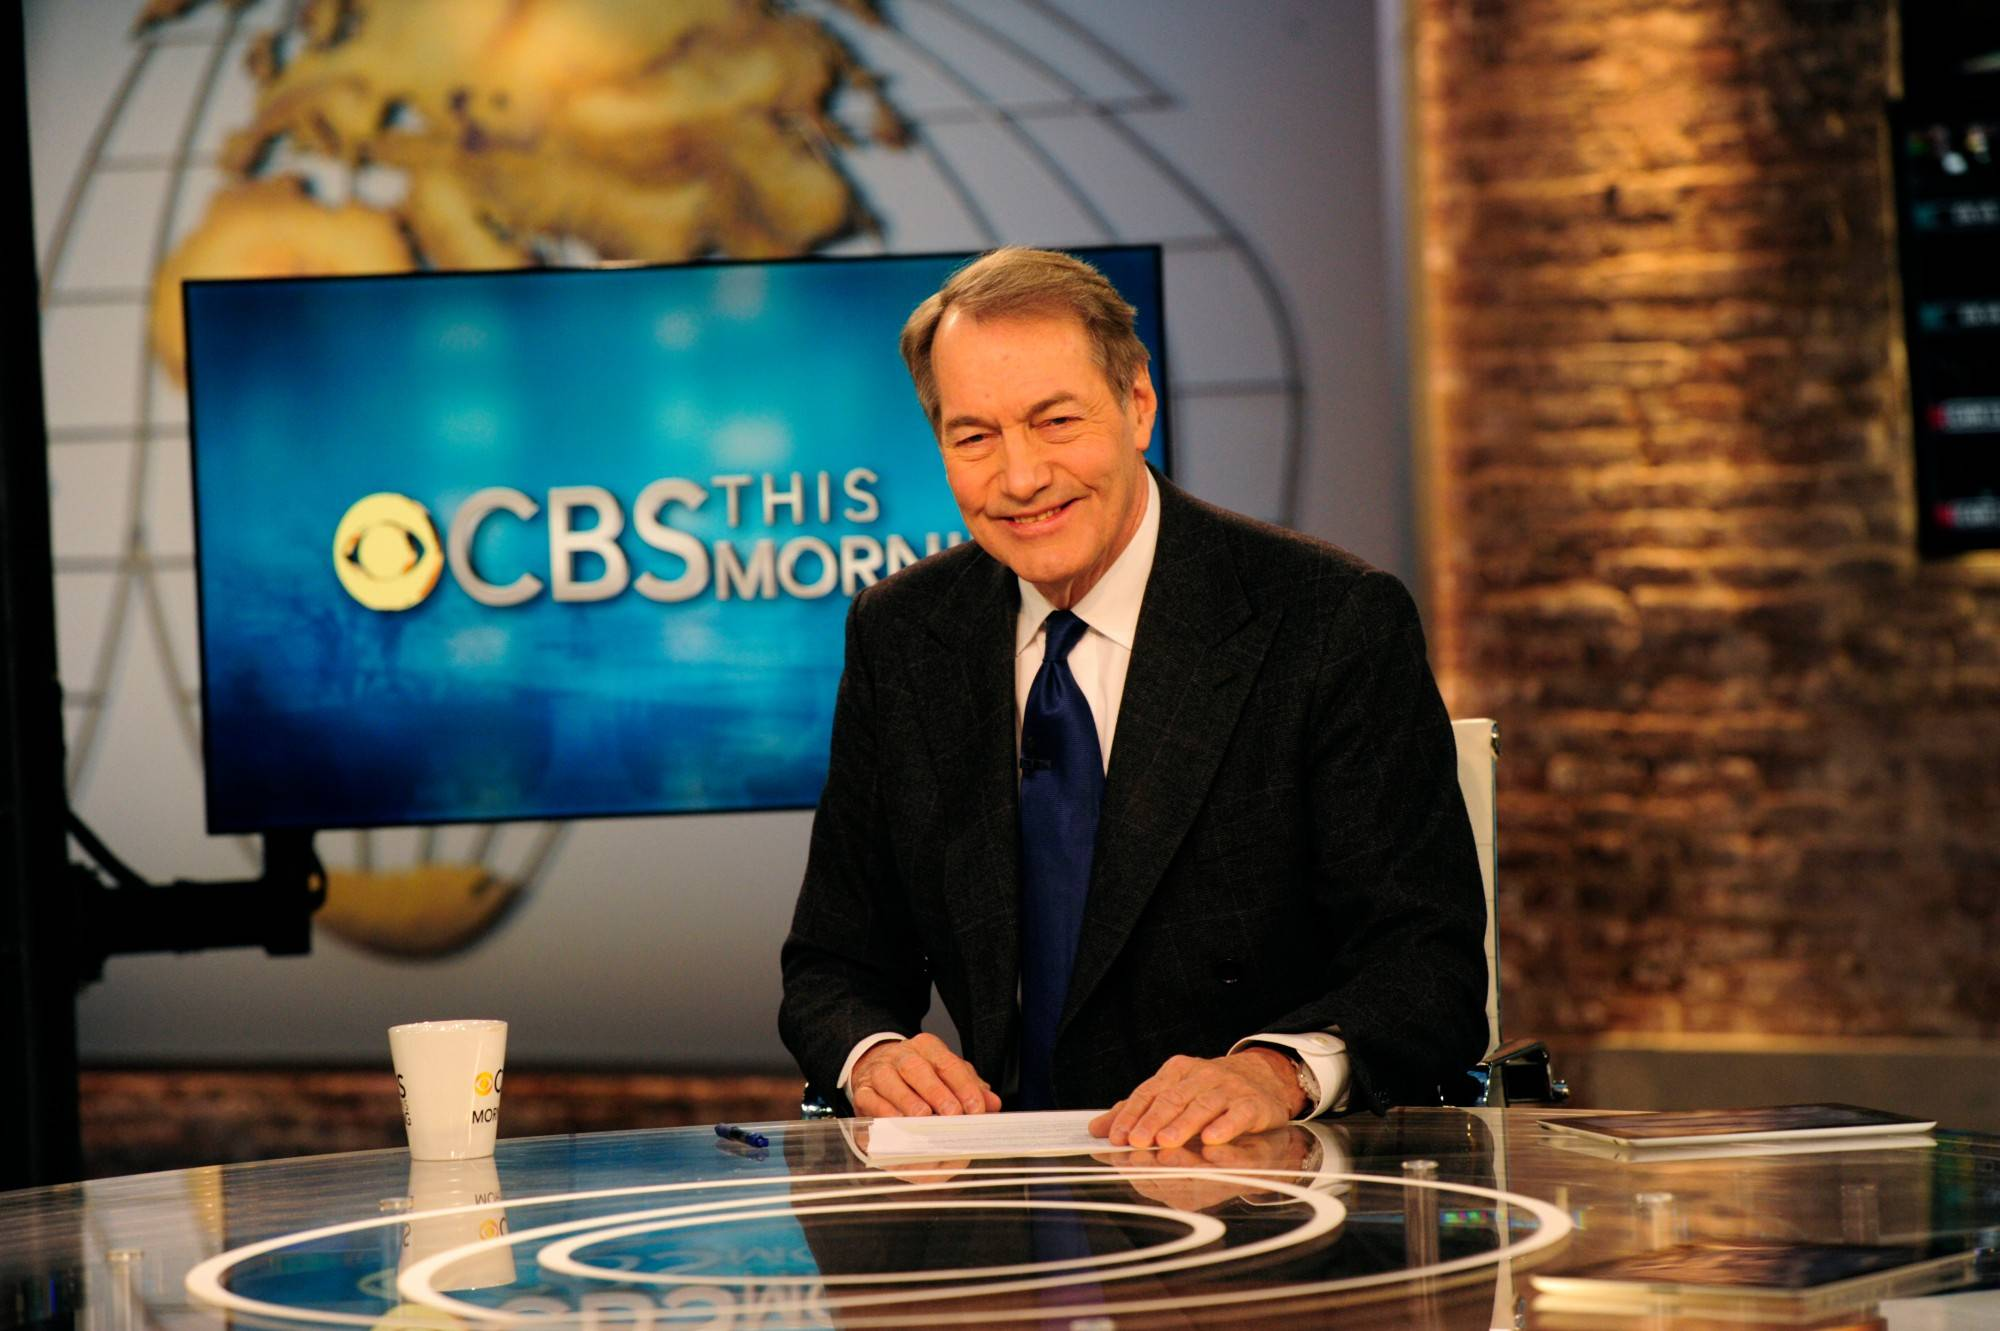 A new study suggests that, if you don't want to gain weight, you should watch Charlie Rose -- or any more leisurely paced talk show.